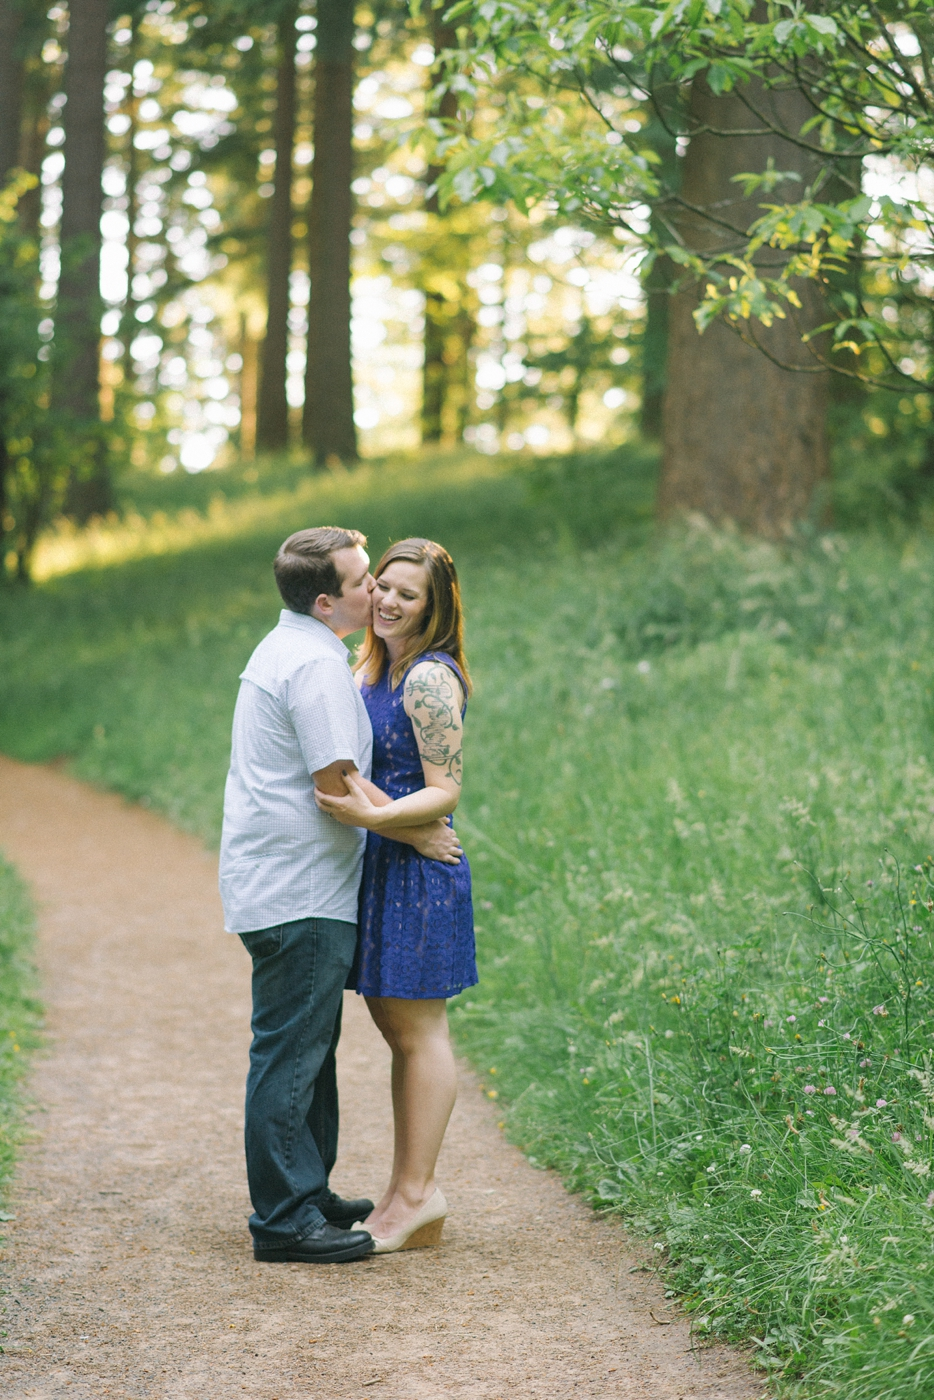 engagement-photography-portland-oregon-hoyt-arboretum-washington-park-romantic-couples-portraits-kiss-nature-natural-light-forest-field-shelley-marie-photo-9